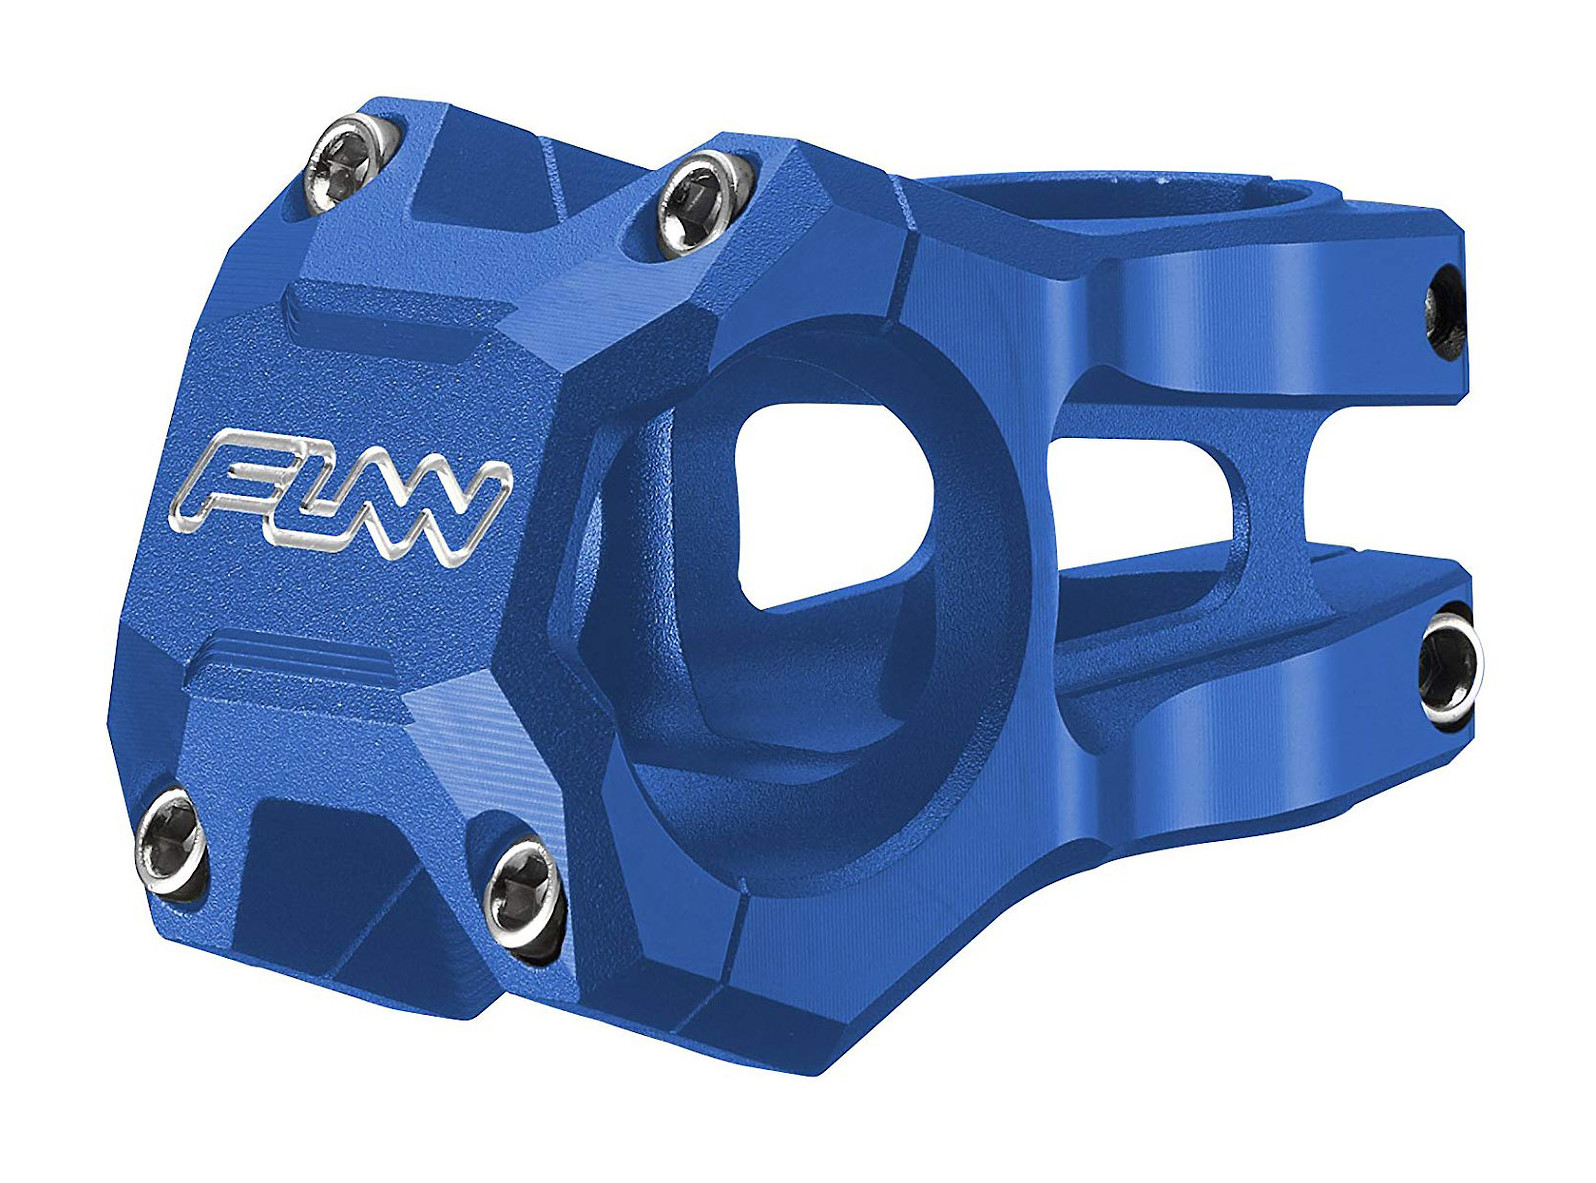 Funn Strippa Evo 35 Stem (blue)